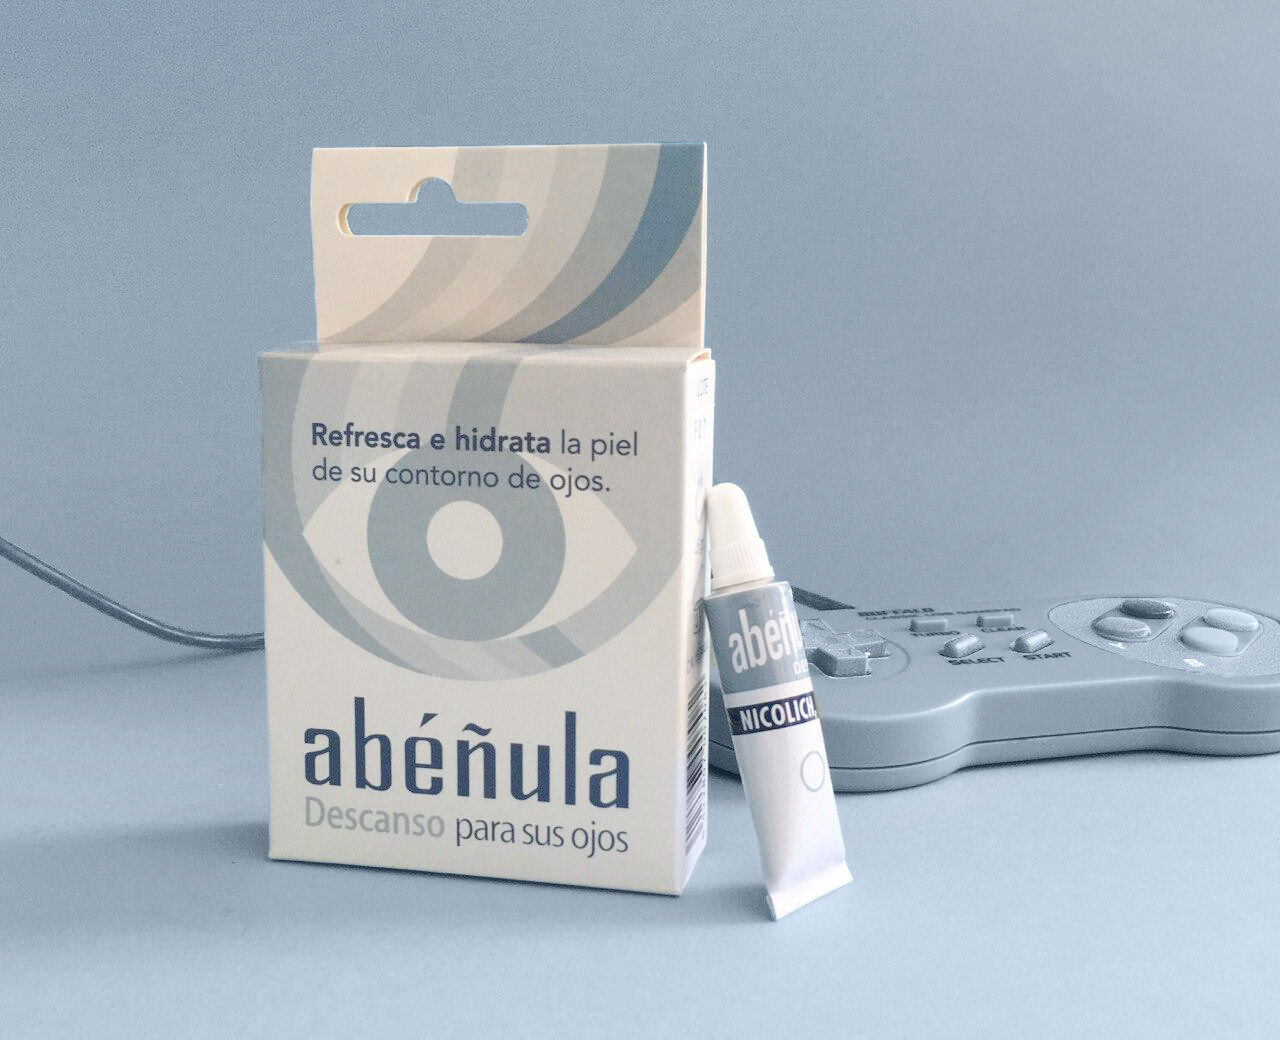 If you have swollen eyes use Relax Abéñula - ABÉÑULA NICOLICH